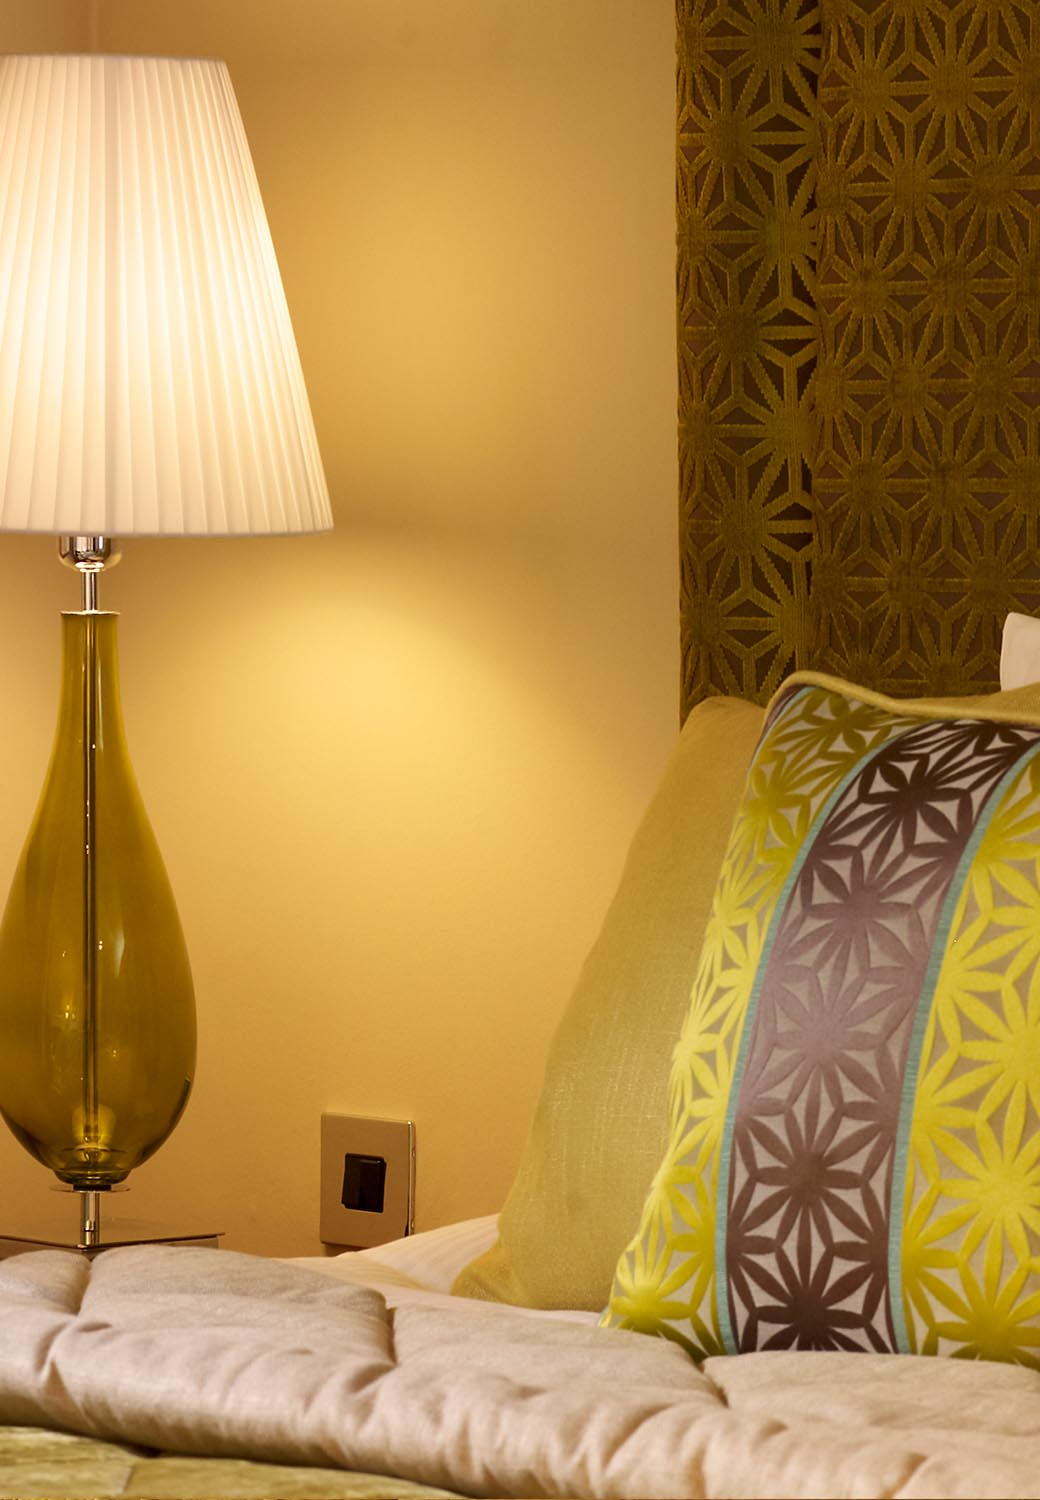 Superior room at The Arden Hotel in Stratford-upon-Avon